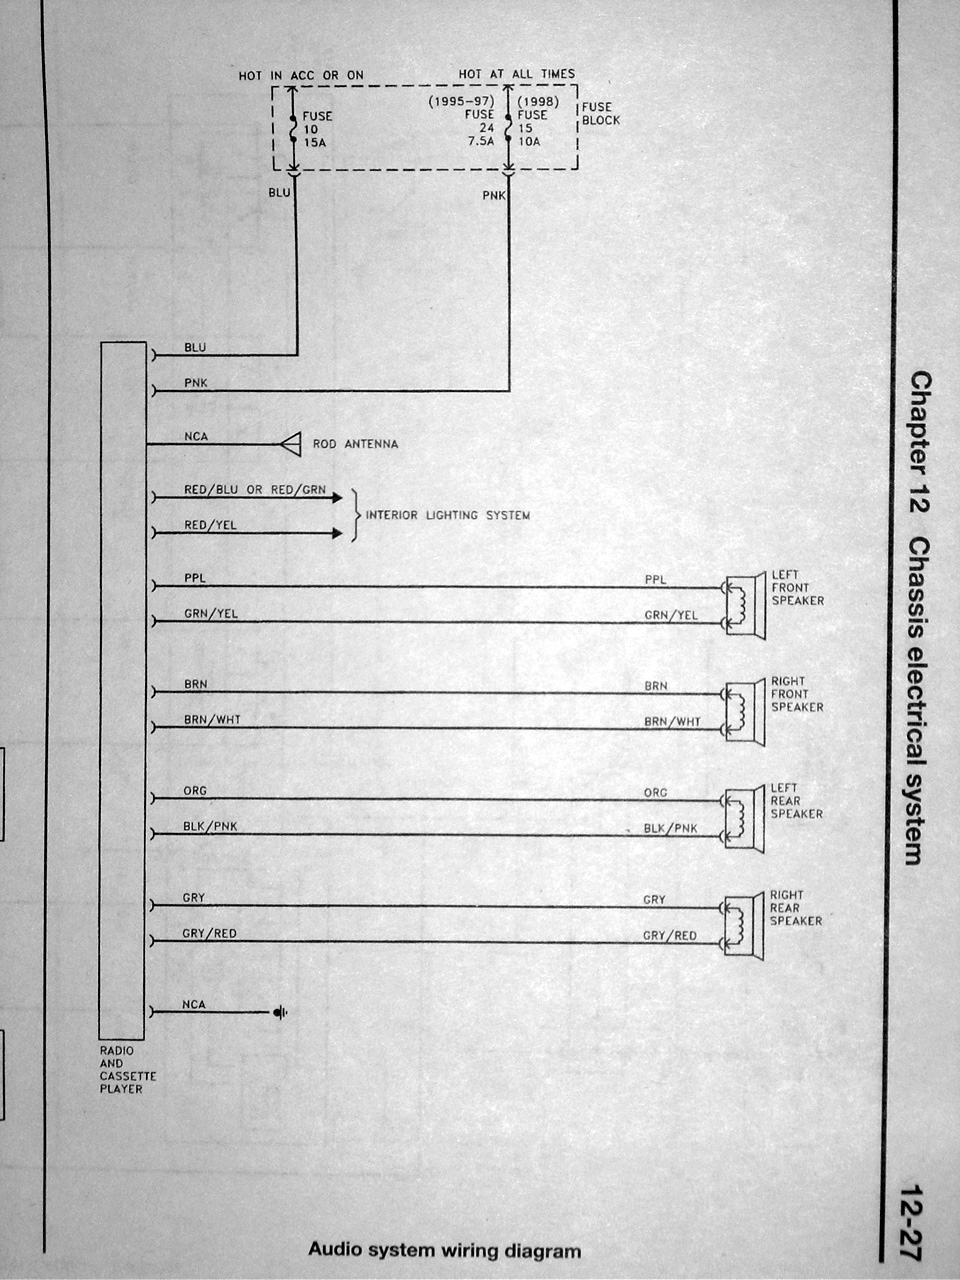 Wiring Diagram For 2003 Nissan Sentra Trusted 1994 Dodge Ram 1500 Stereo Thread Useful Info Forum